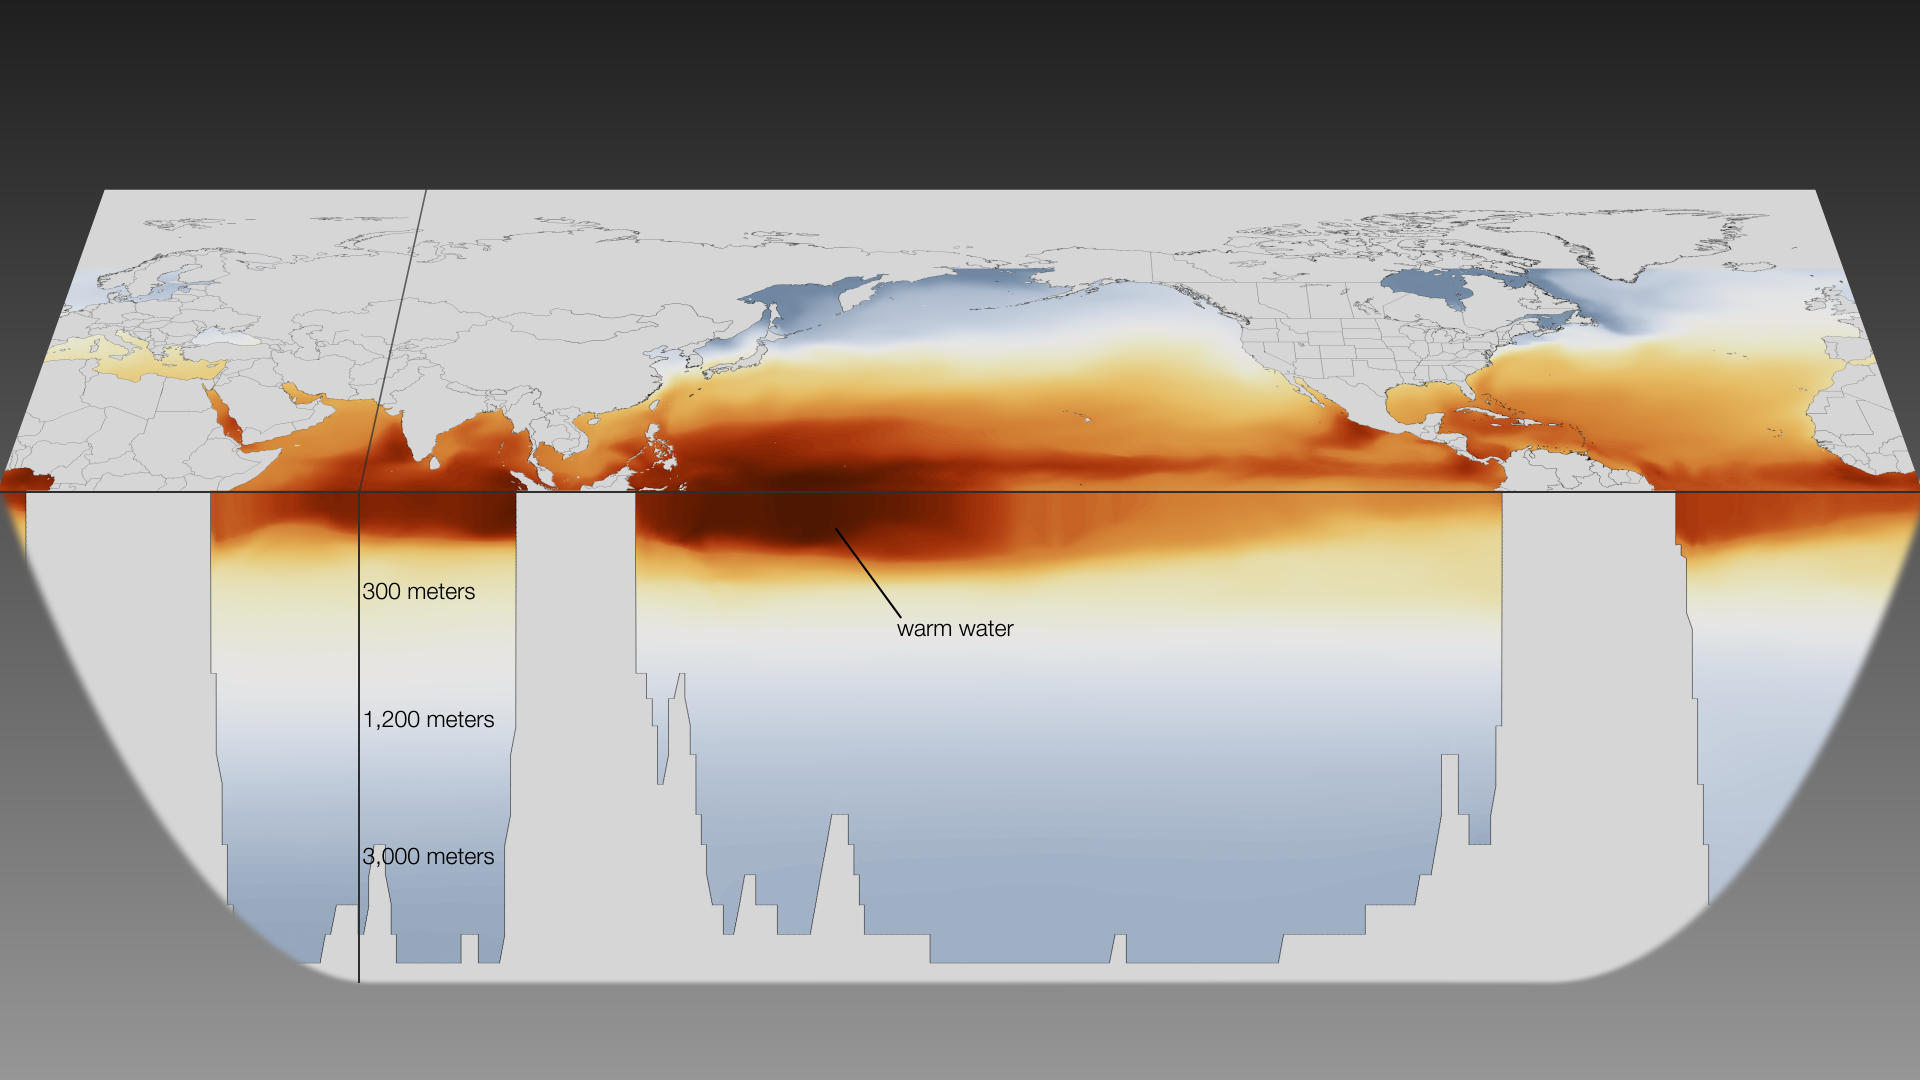 A graph depicts ocean temperatures along the equator at varying depths.